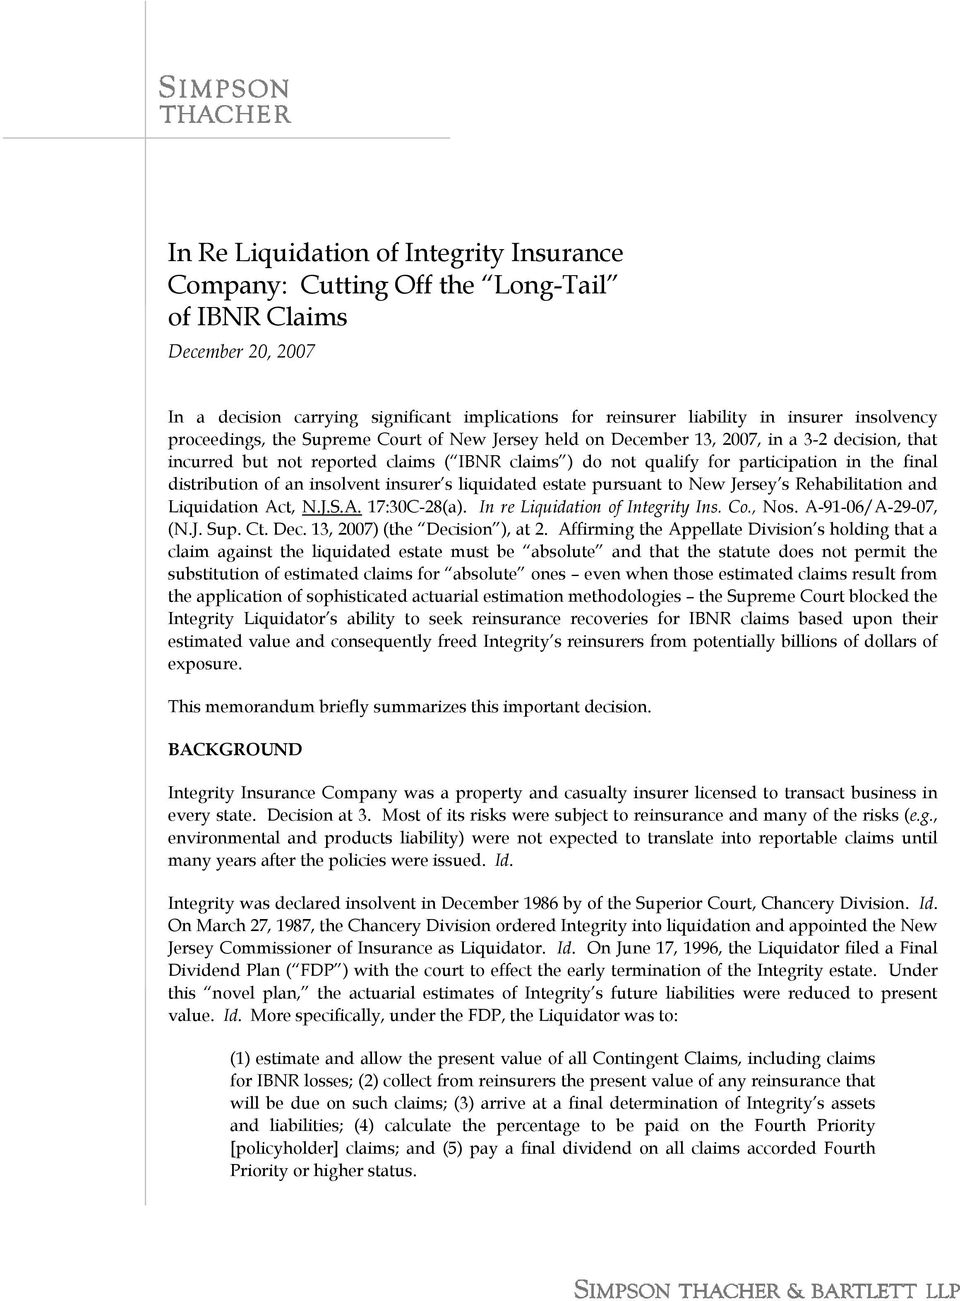 final distribution of an insolvent insurer s liquidated estate pursuant to New Jersey s Rehabilitation and Liquidation Act, N.J.S.A. 17:30C-28(a). In re Liquidation of Integrity Ins. Co., Nos.